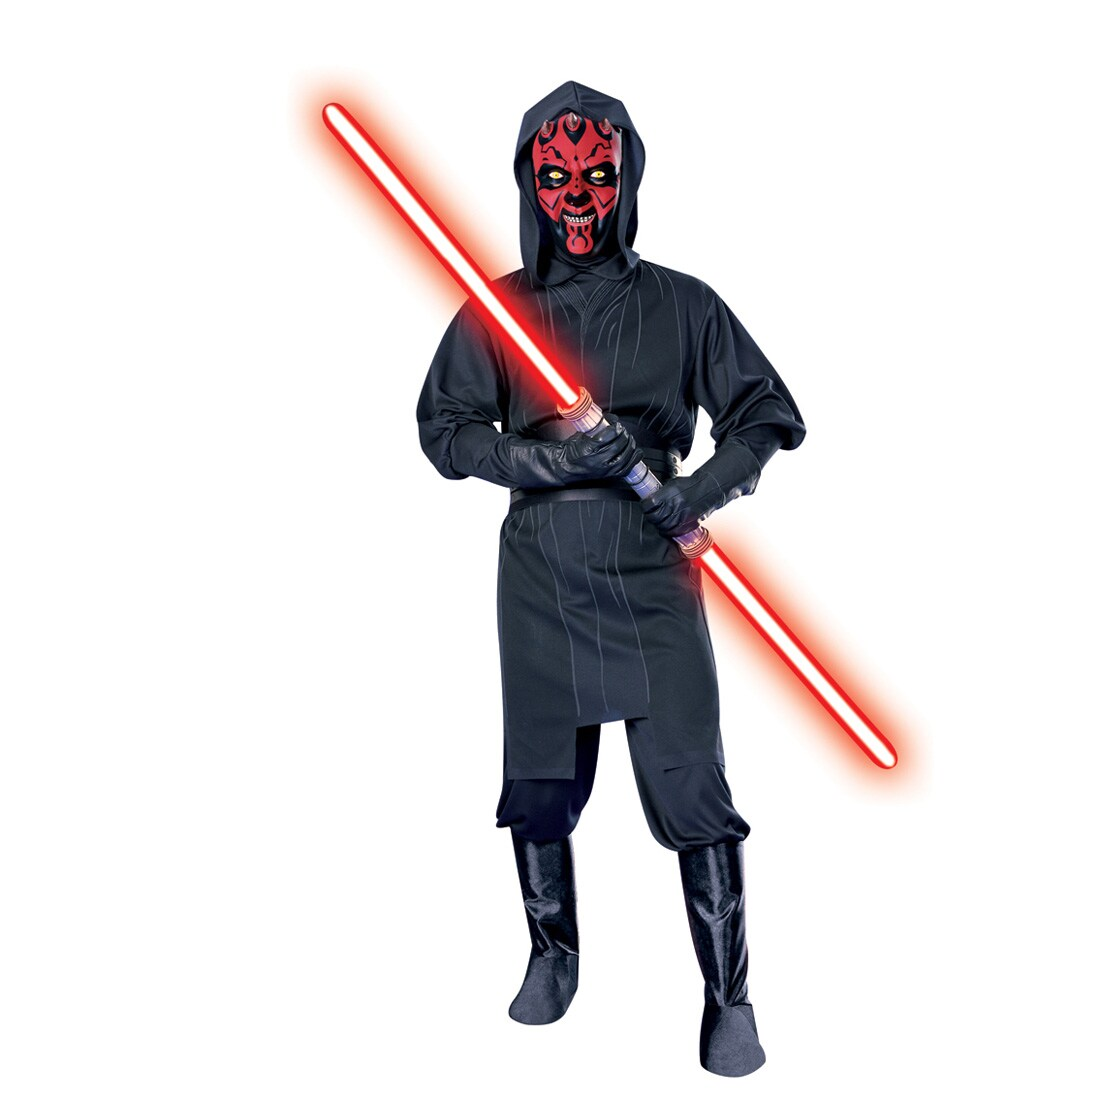 Karneval Kostüm Star Wars Darth Maul Kostüm Star Wars Std 48 52 Starwars Filmkostüm